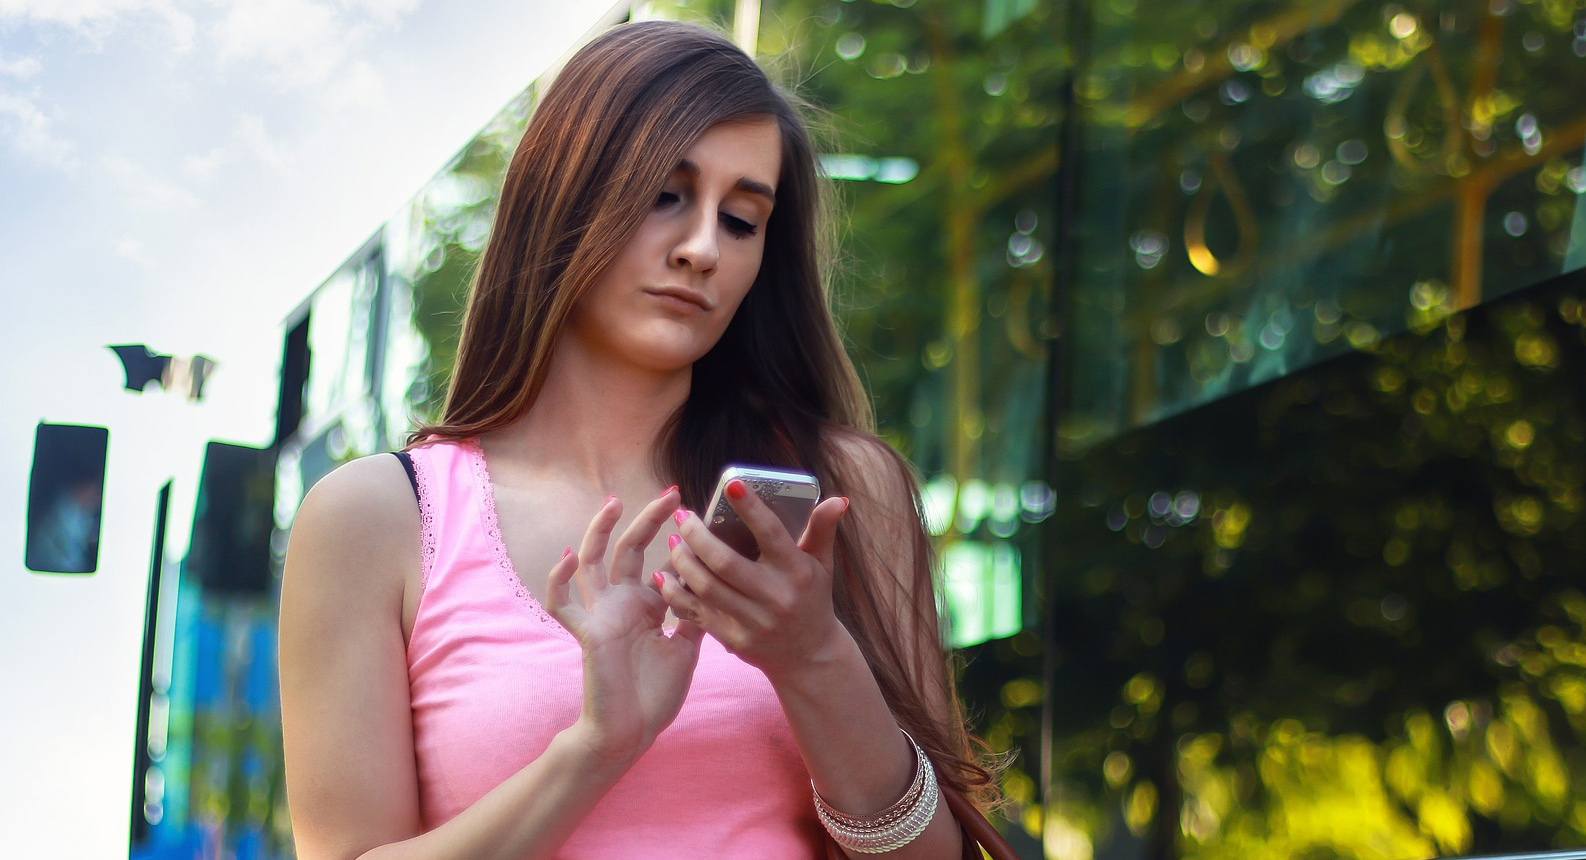 woman_using_smartphone